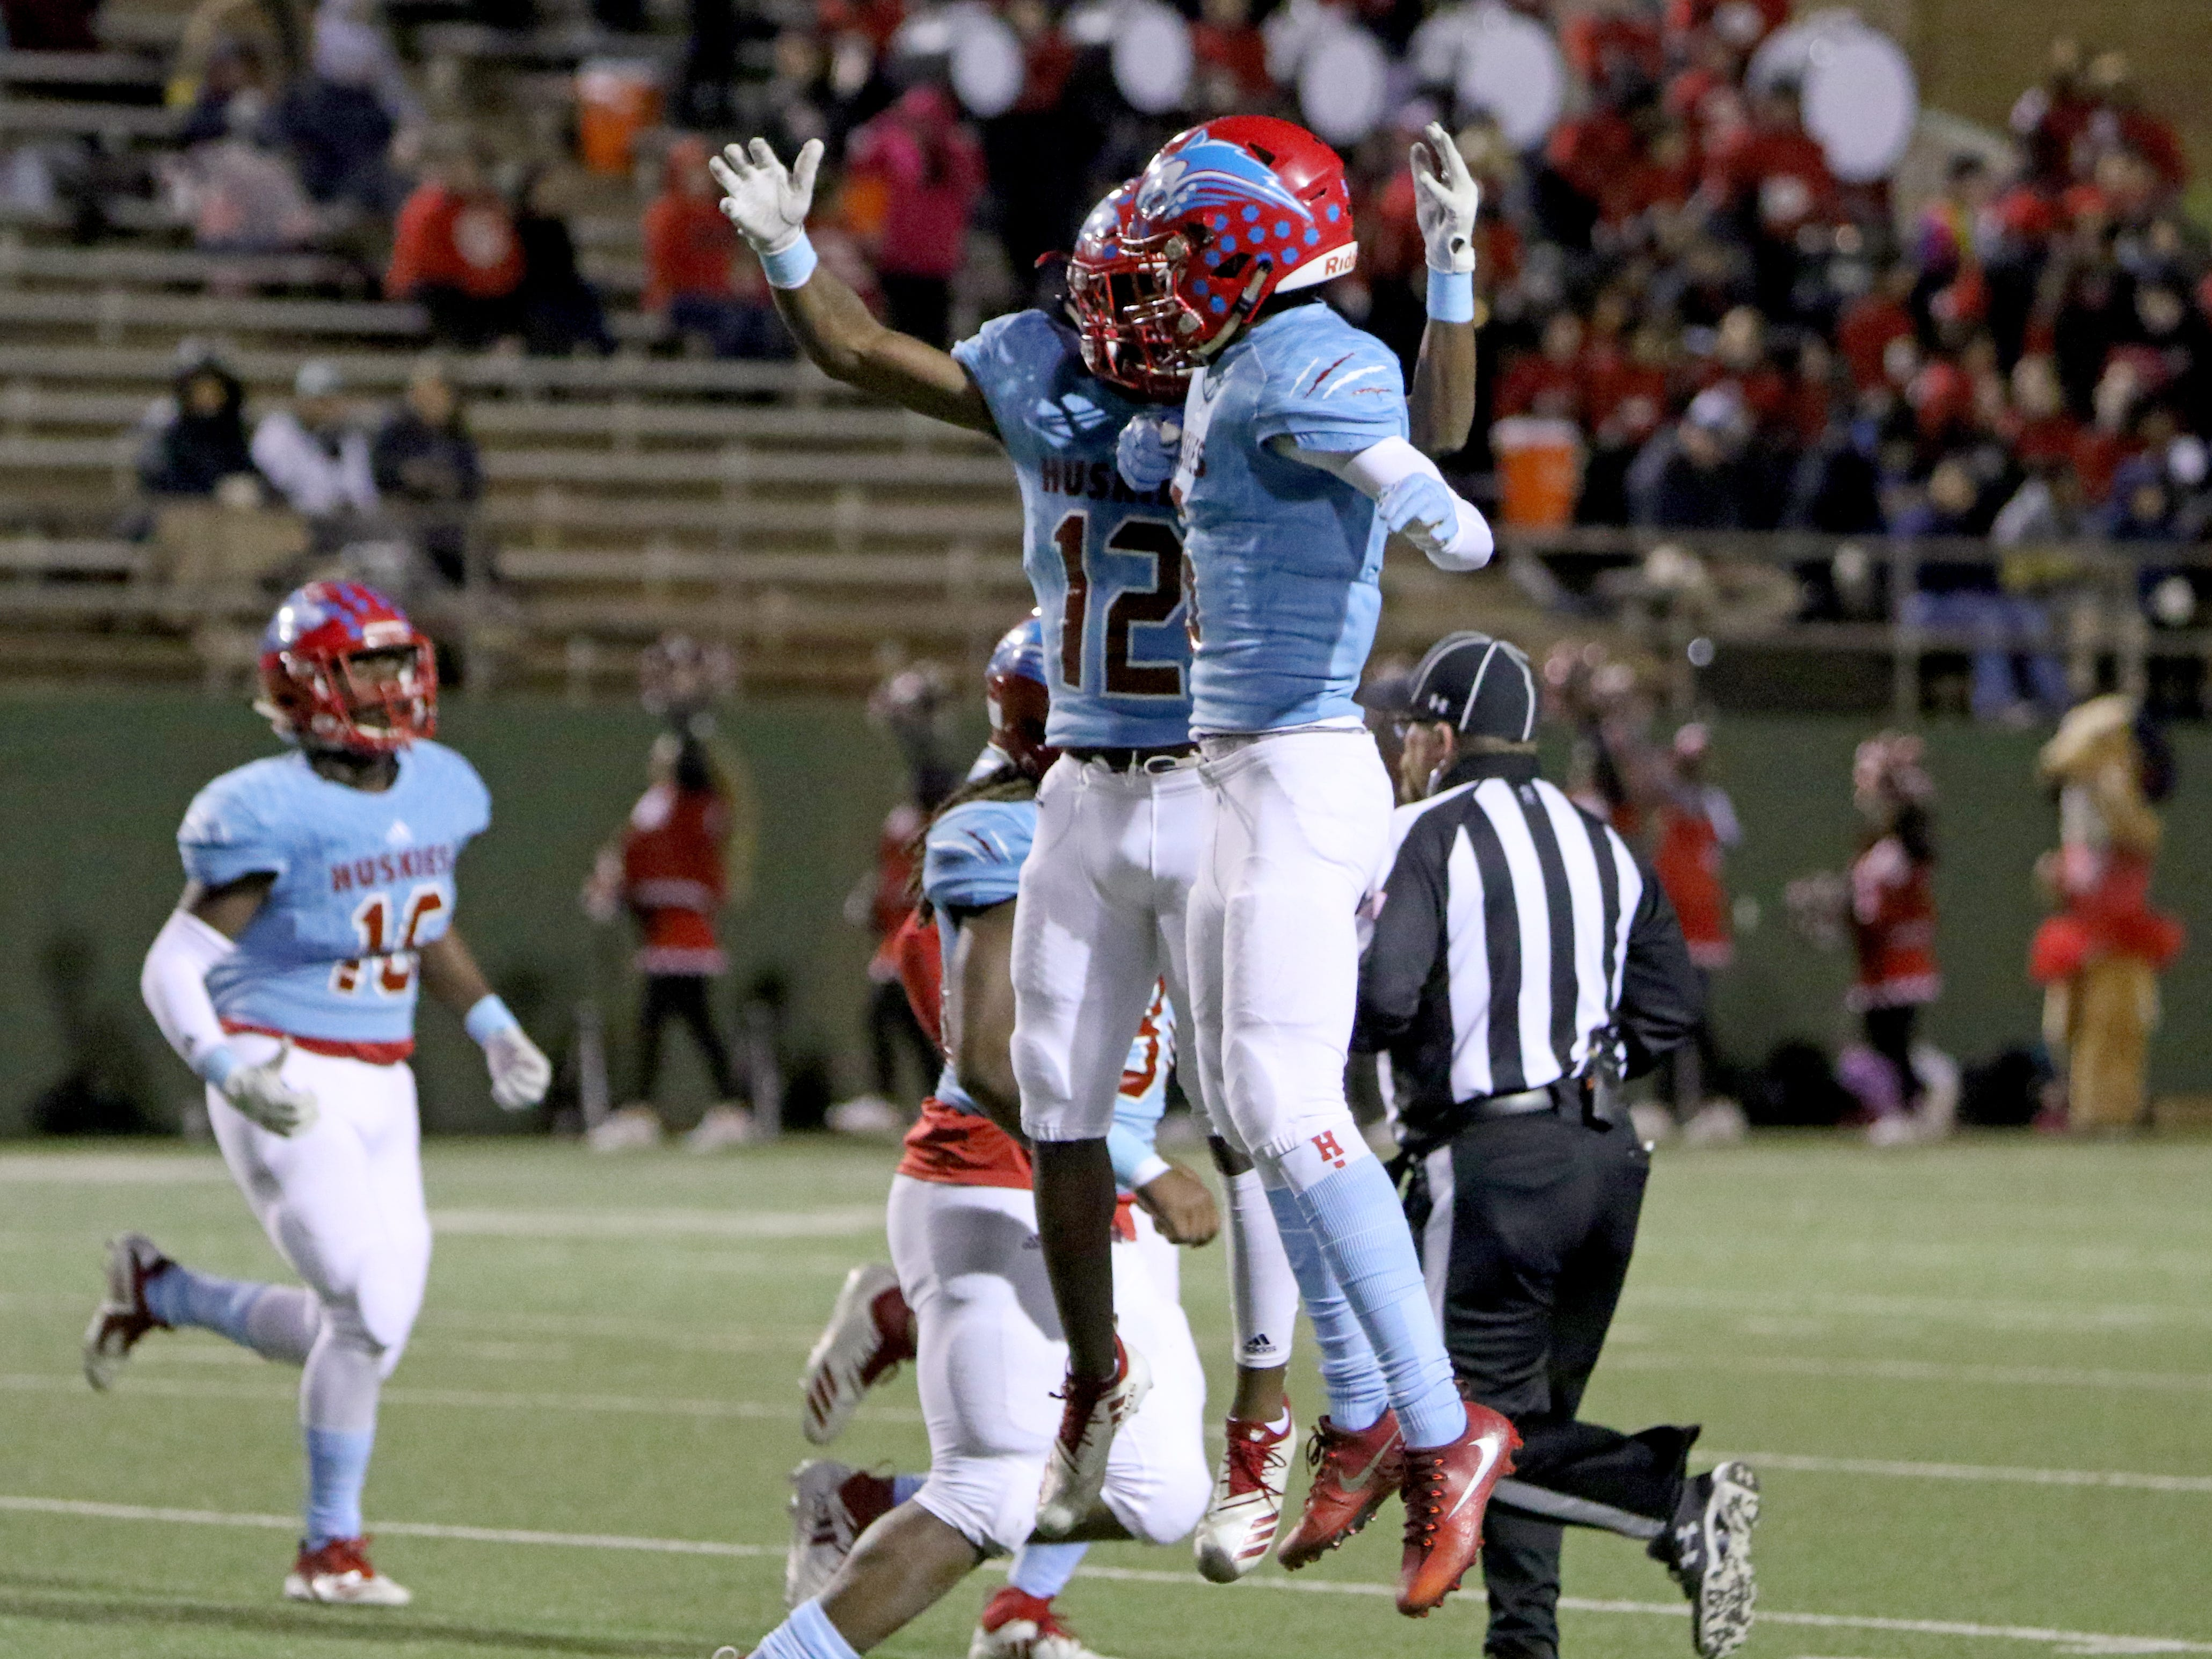 Hirschi's Stavonte Vaughn (12) and Kenta Manuel celebrate recovering the onside kick against Mineral Wells Thursday, Nov. 8, 2018, at Memorial Stadium. The Huskies defeated the Rams 41-20.